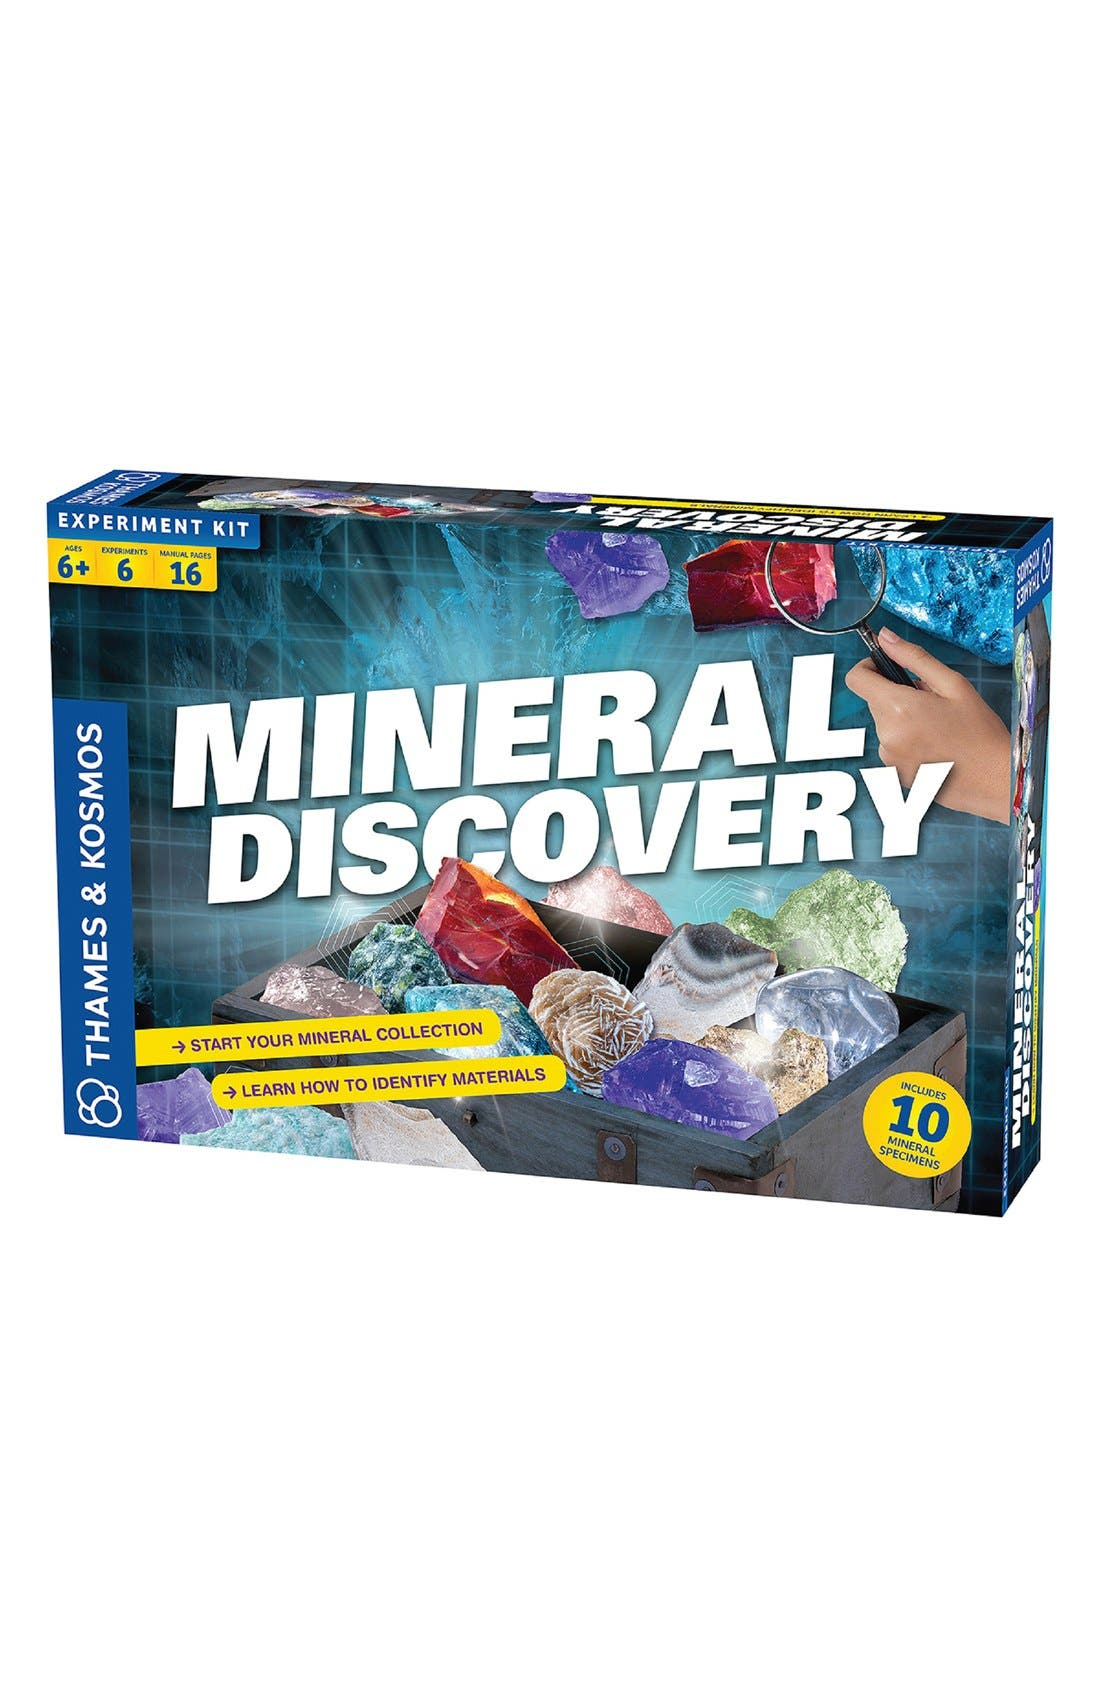 Thames & Kosmos 'Mineral Discovery' Experiment Kit